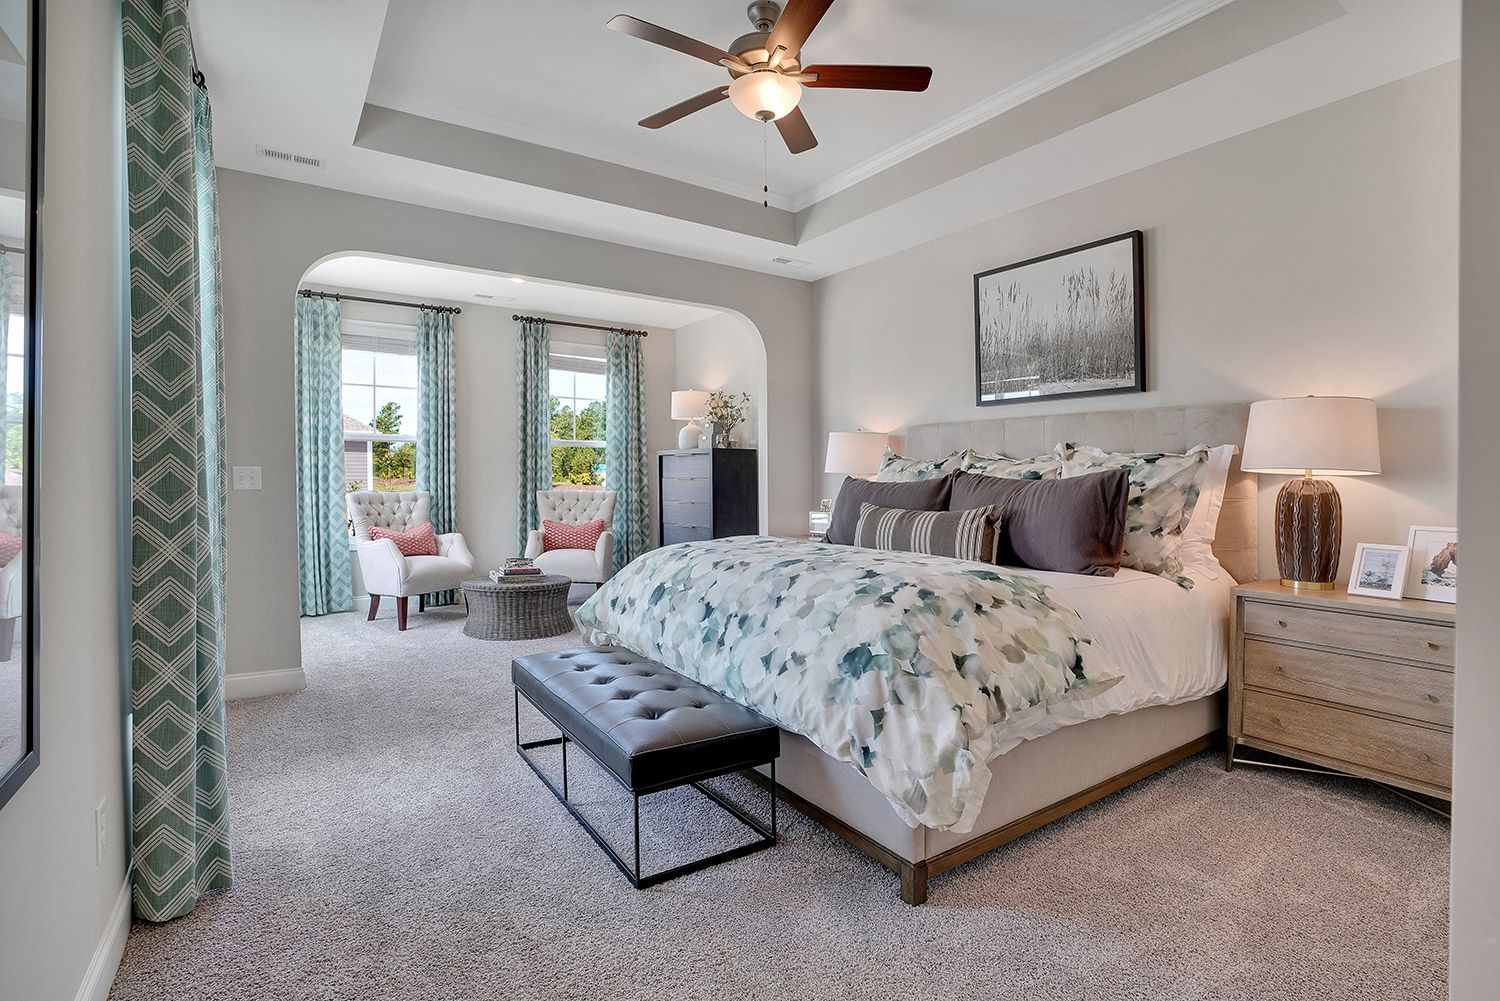 Bedroom featured in the Promenade 2020 Classic By McKee Homes in Wilmington, NC